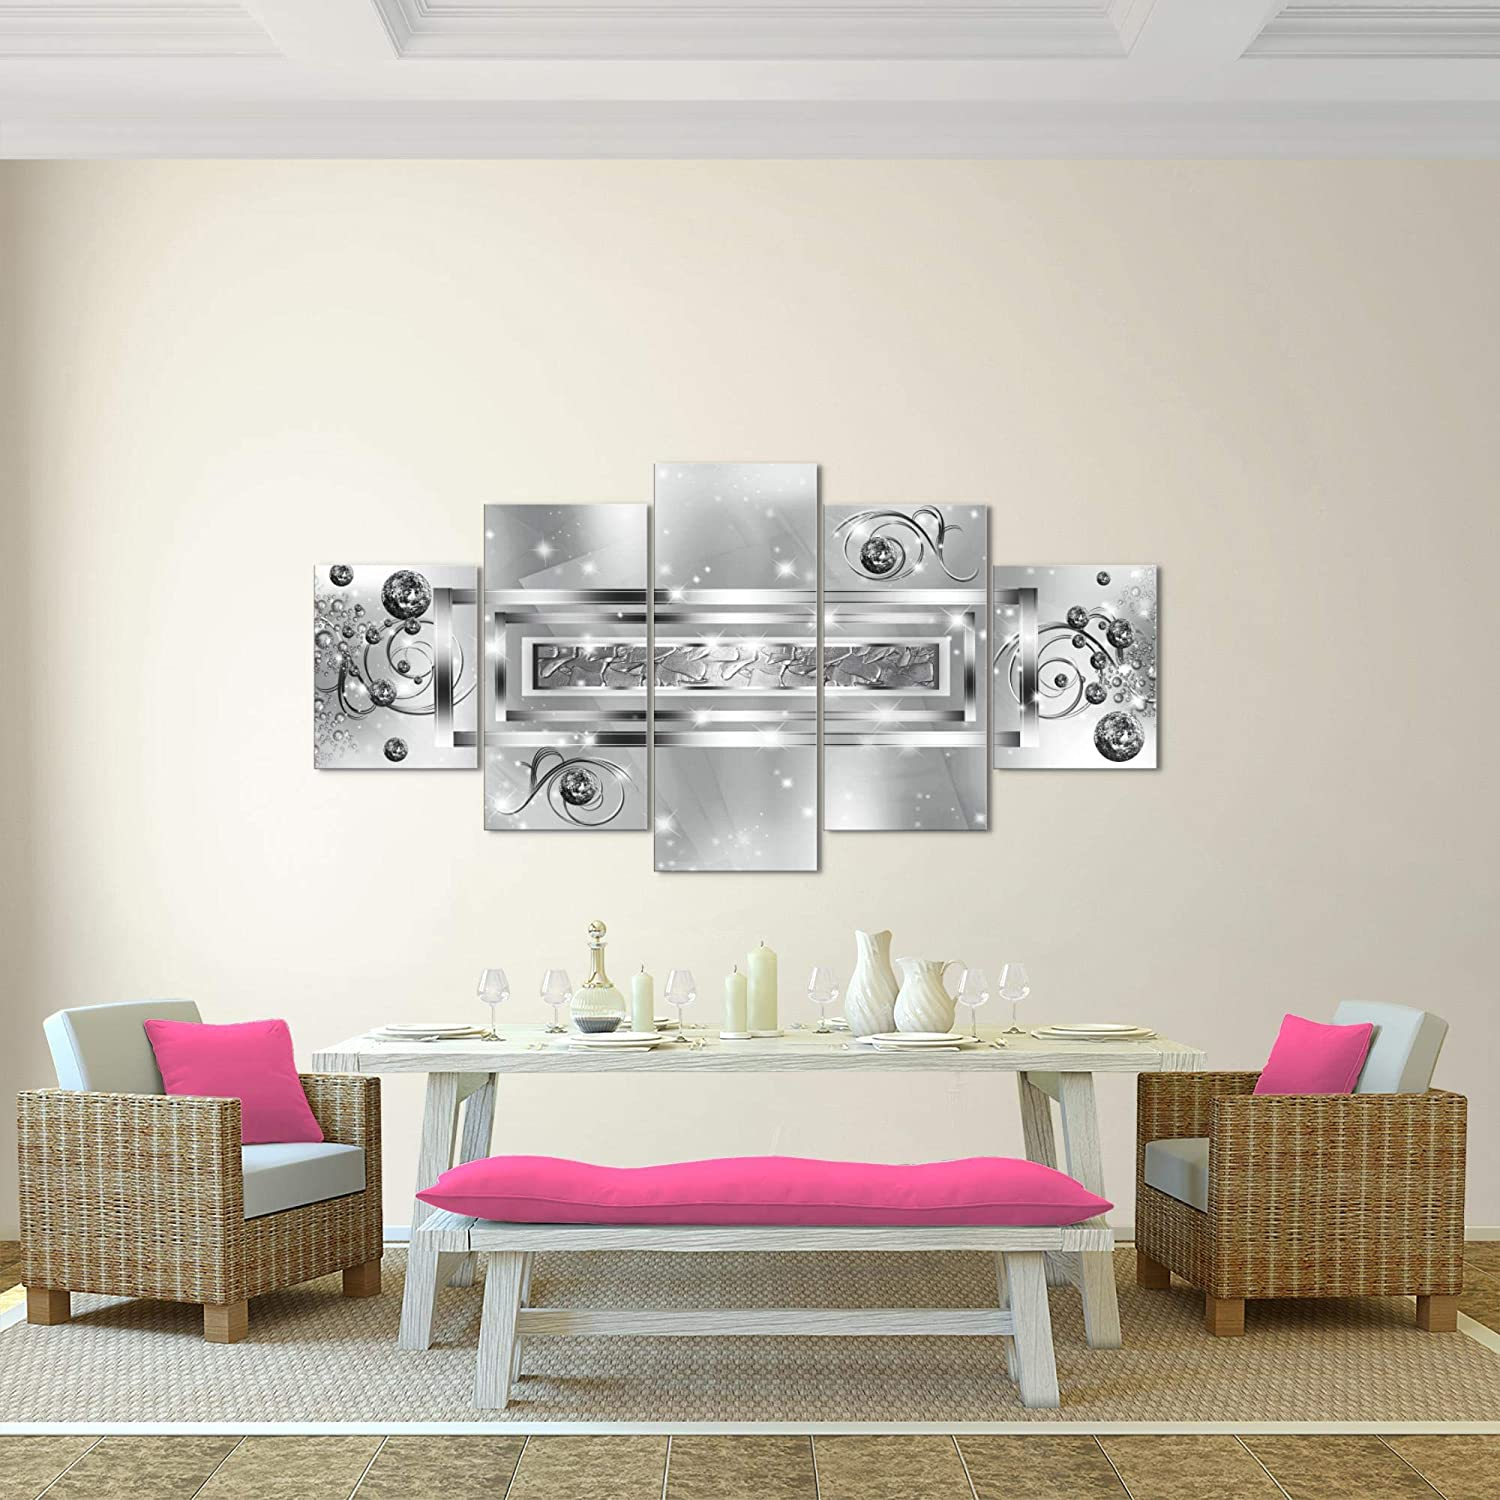 Leinwand Bild XXL Format Wandbilder Wohnzimmer Wohnung Deko Kunstdrucke Grau 5 Teilig MADE IN GERMANY Fertig zum Aufh/ängen 103851c Bilder Abstrakt Wandbild 200 x 100 cm Vlies